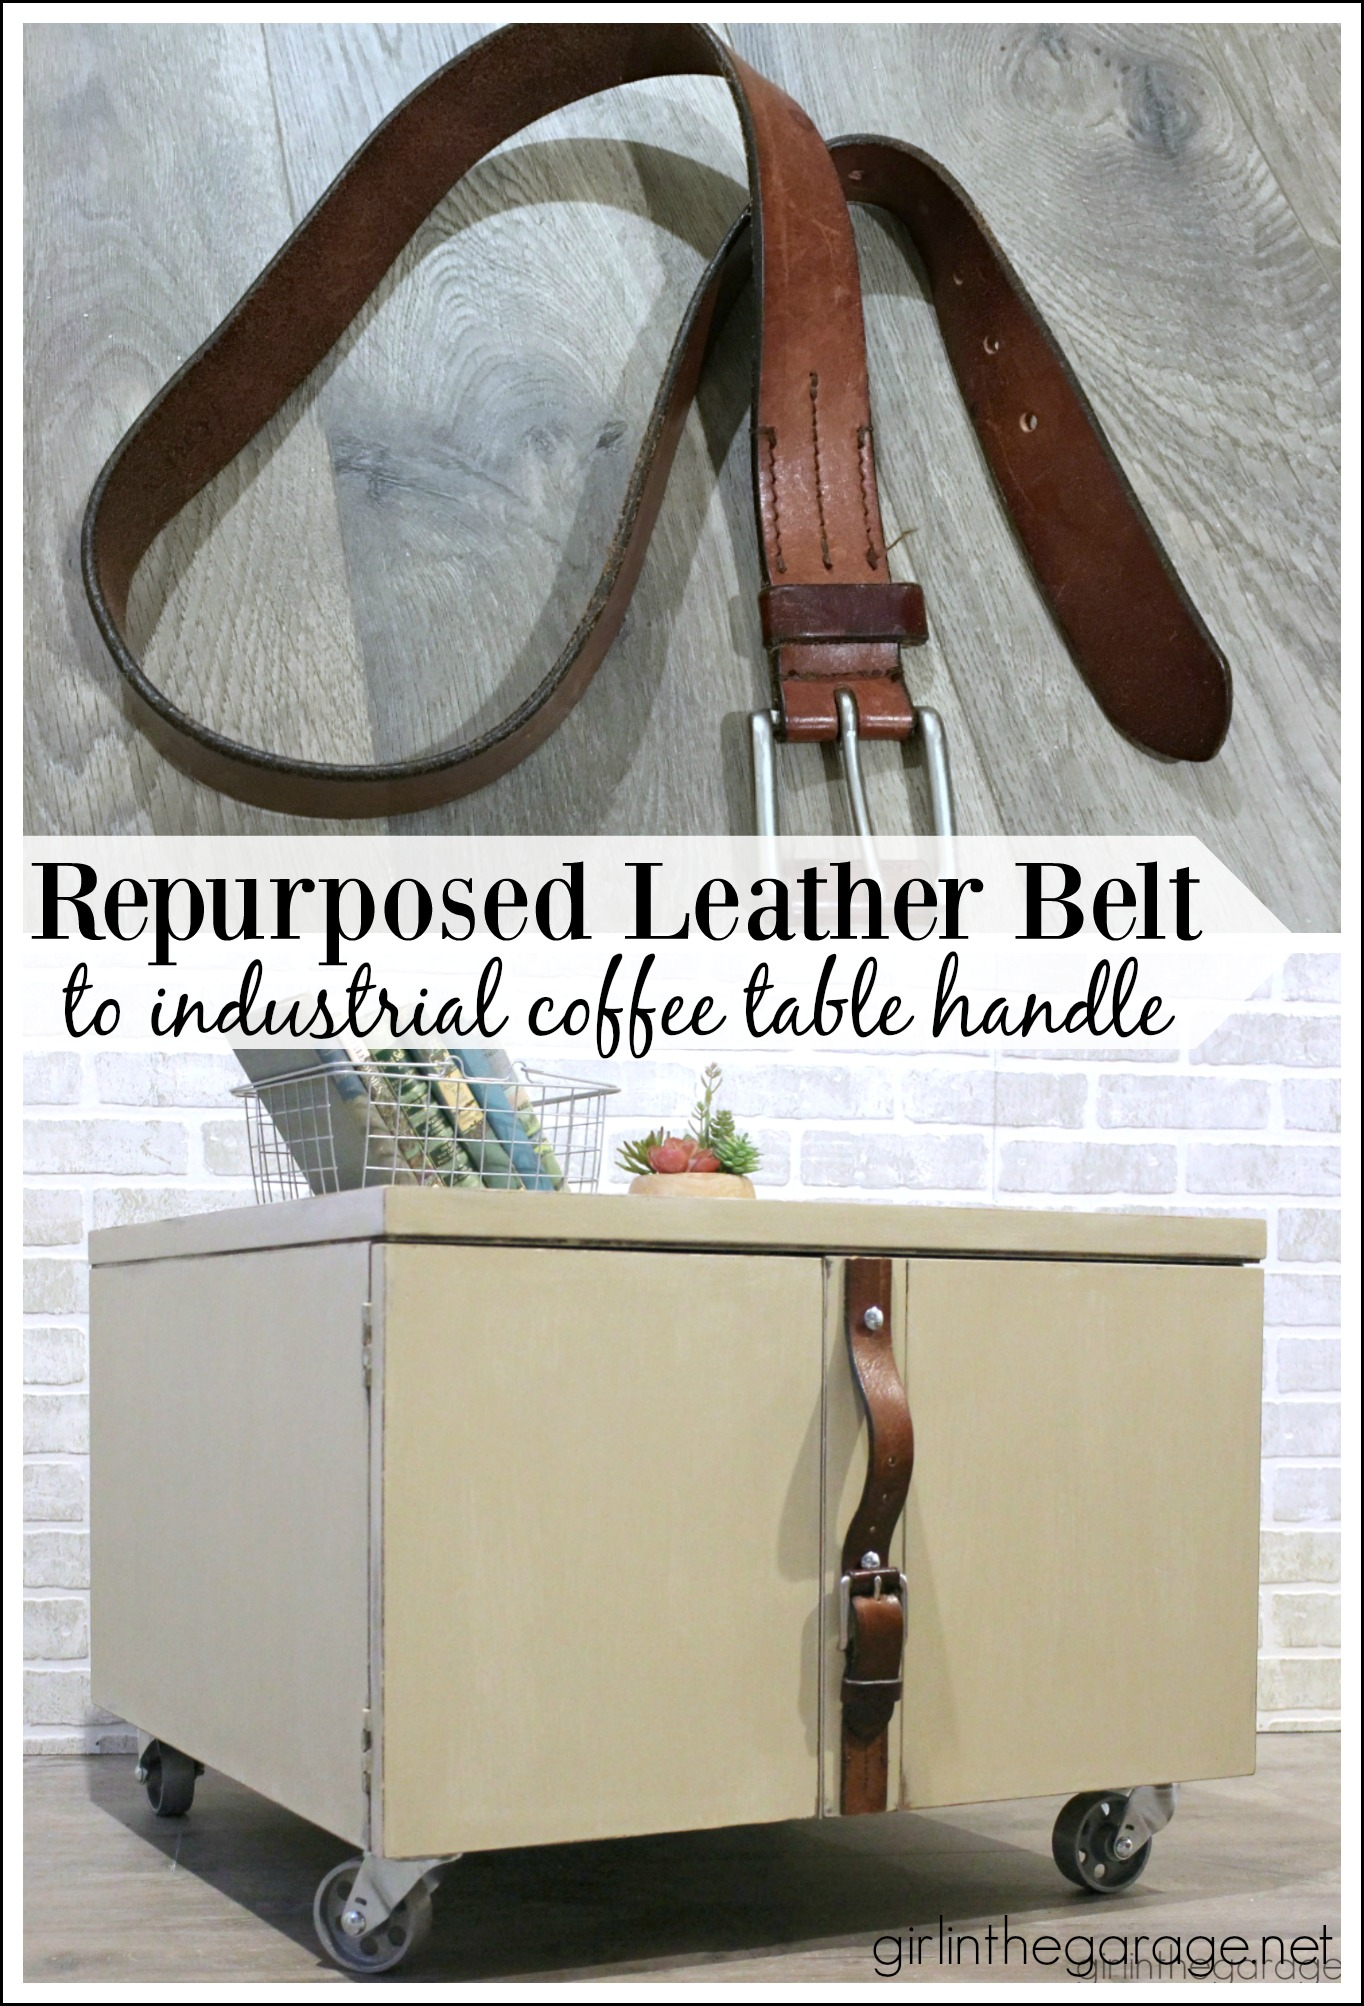 DIY Repurposed Leather Belt Handle - Industrial Coffee Table Makeover with Casters - Girl in the Garage